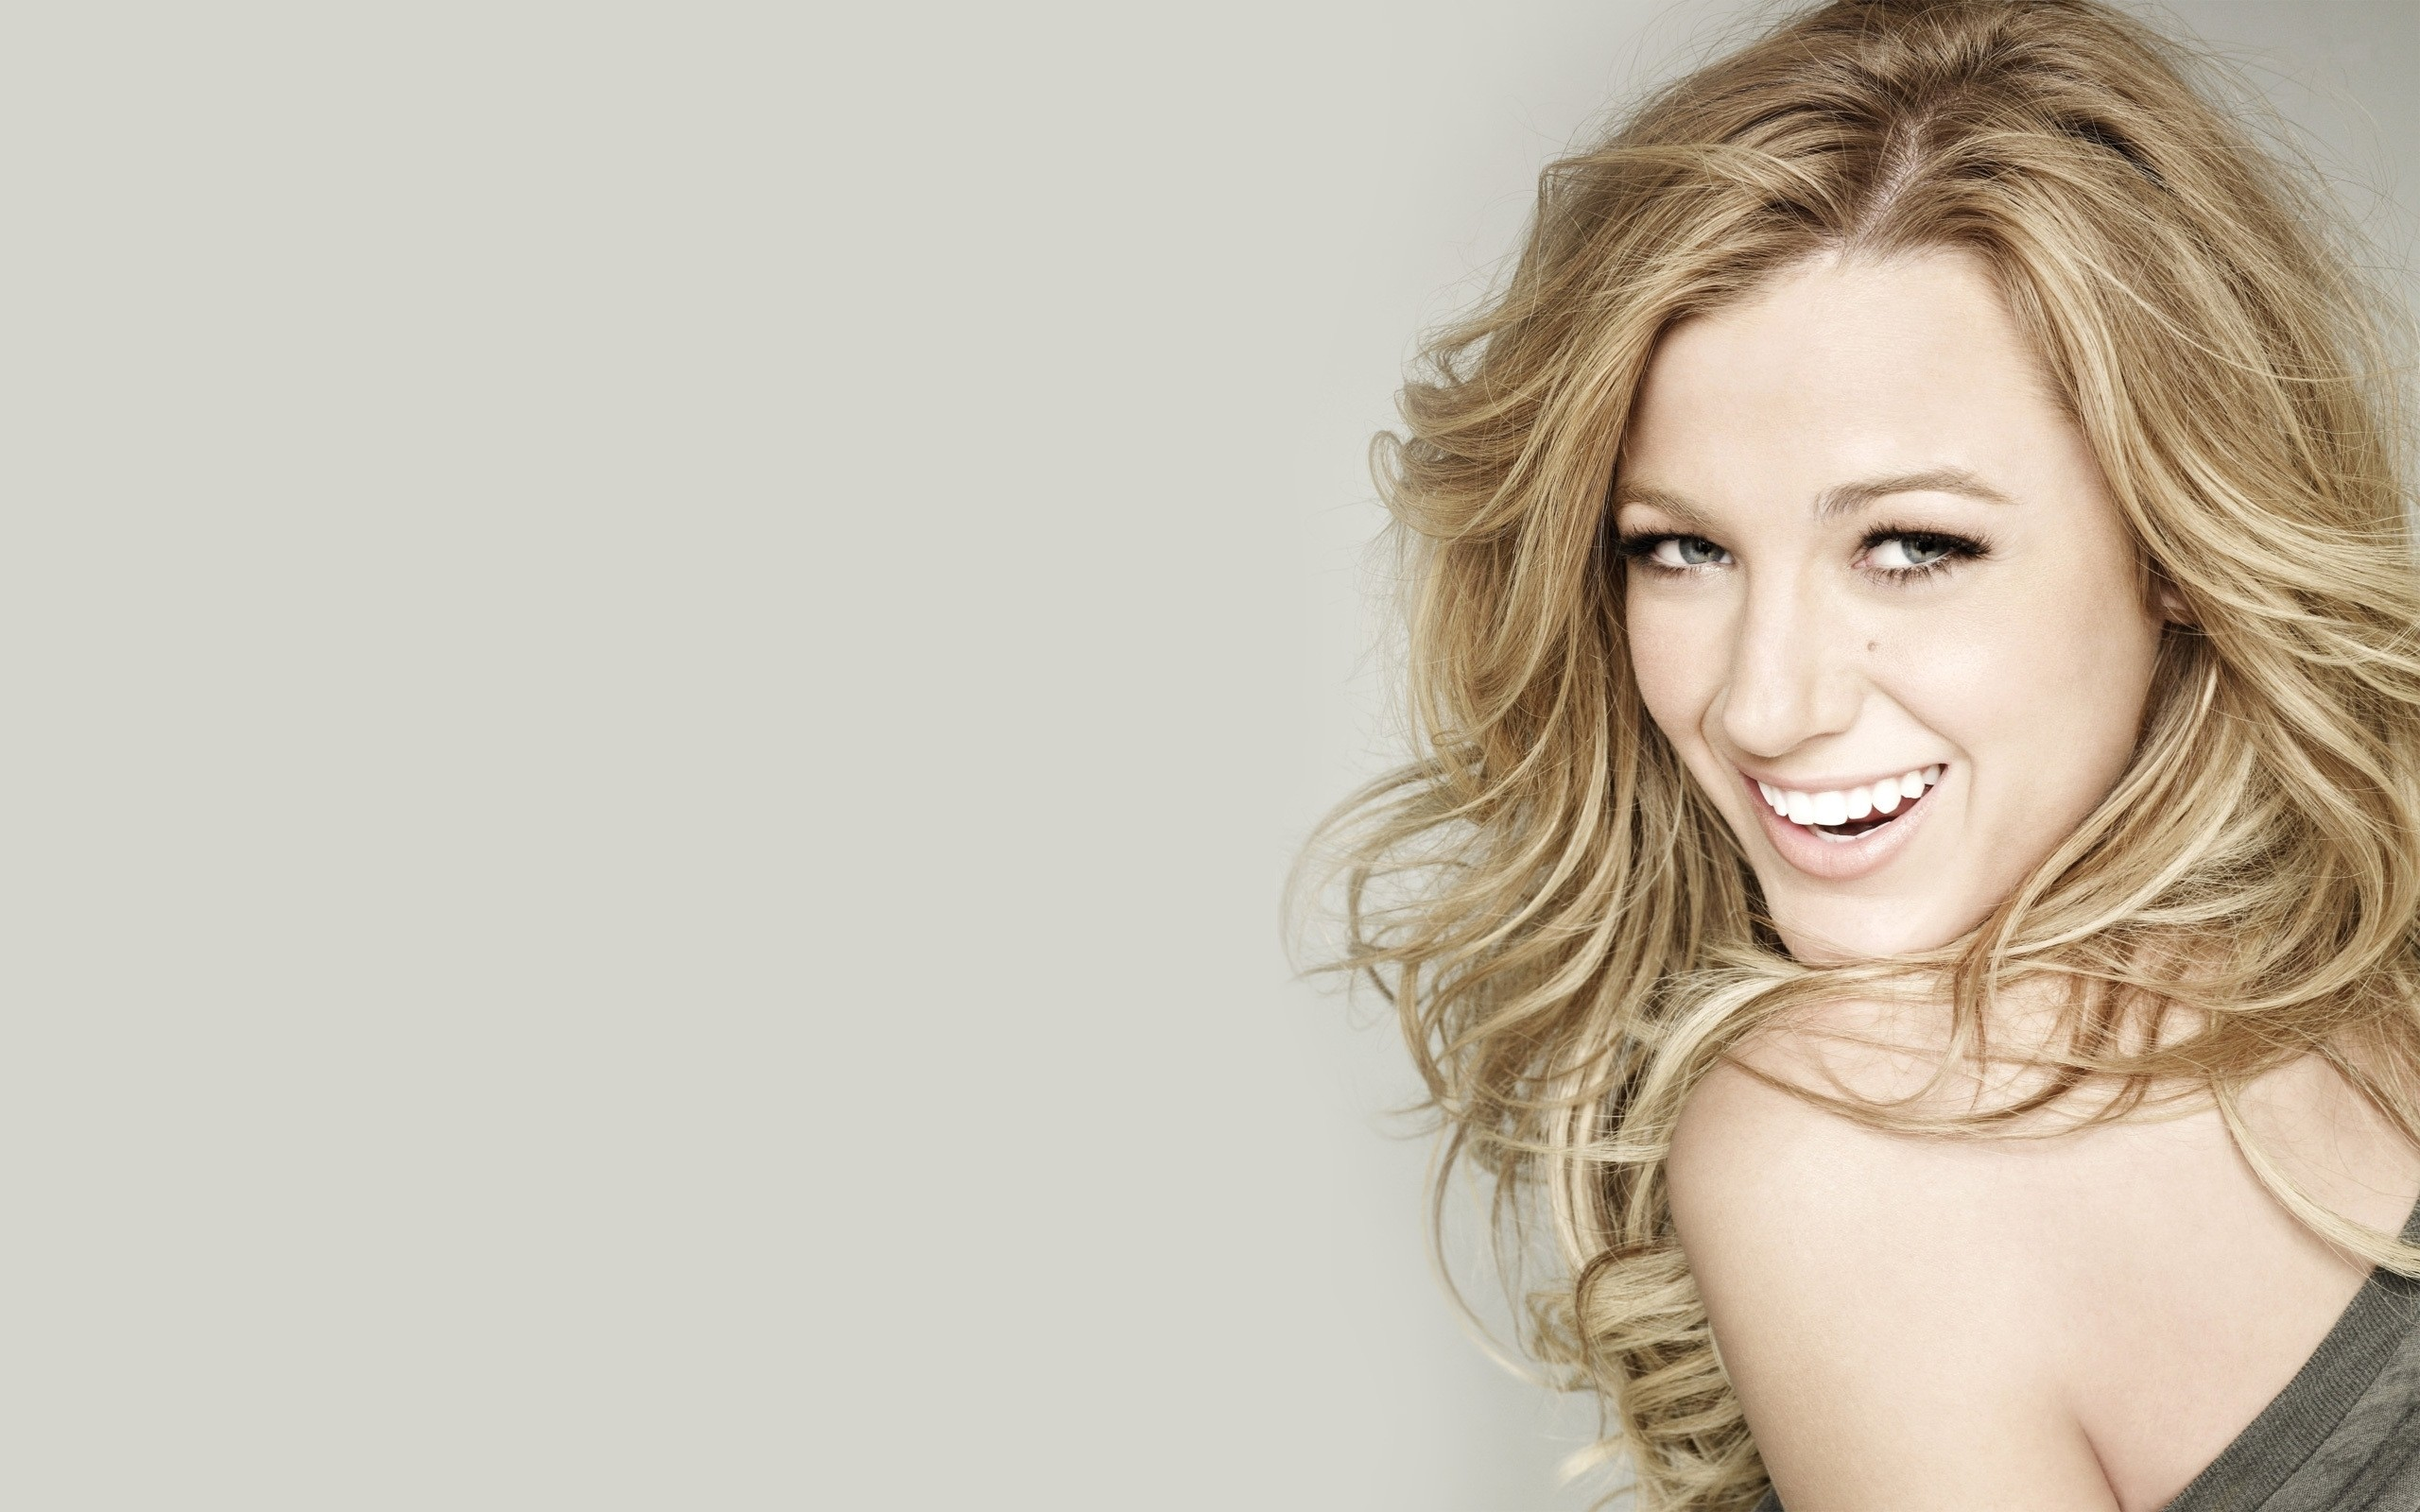 blake lively hd wallpaper | background image | 2560x1600 | id:254561